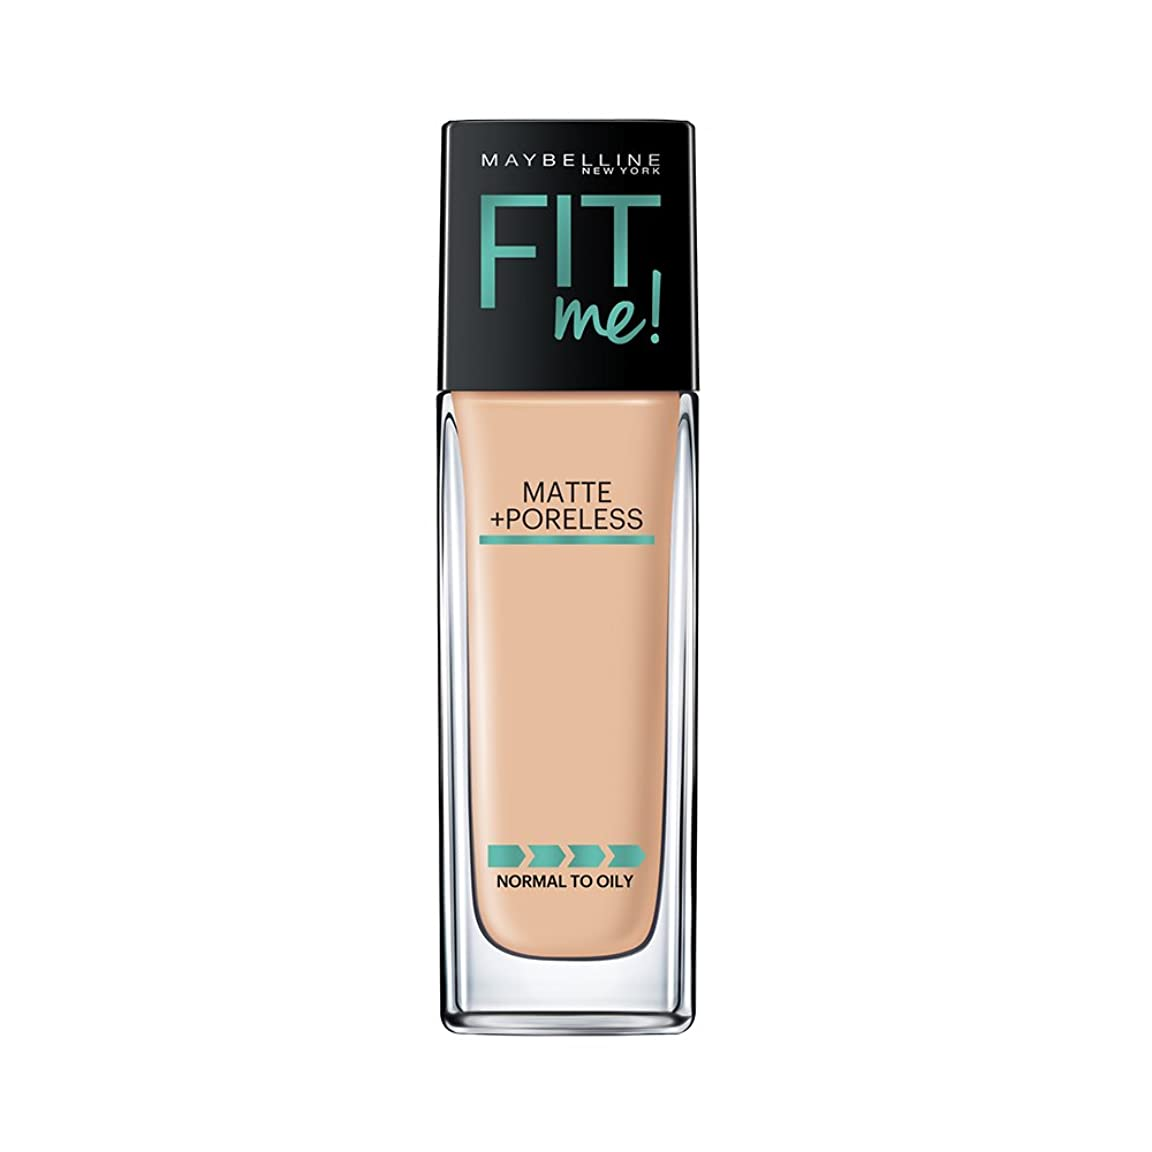 元気シフトトラブルMAYBELLINE Fit Me! Matte + Poreless Foundation - Warm Nude 128 (並行輸入品)